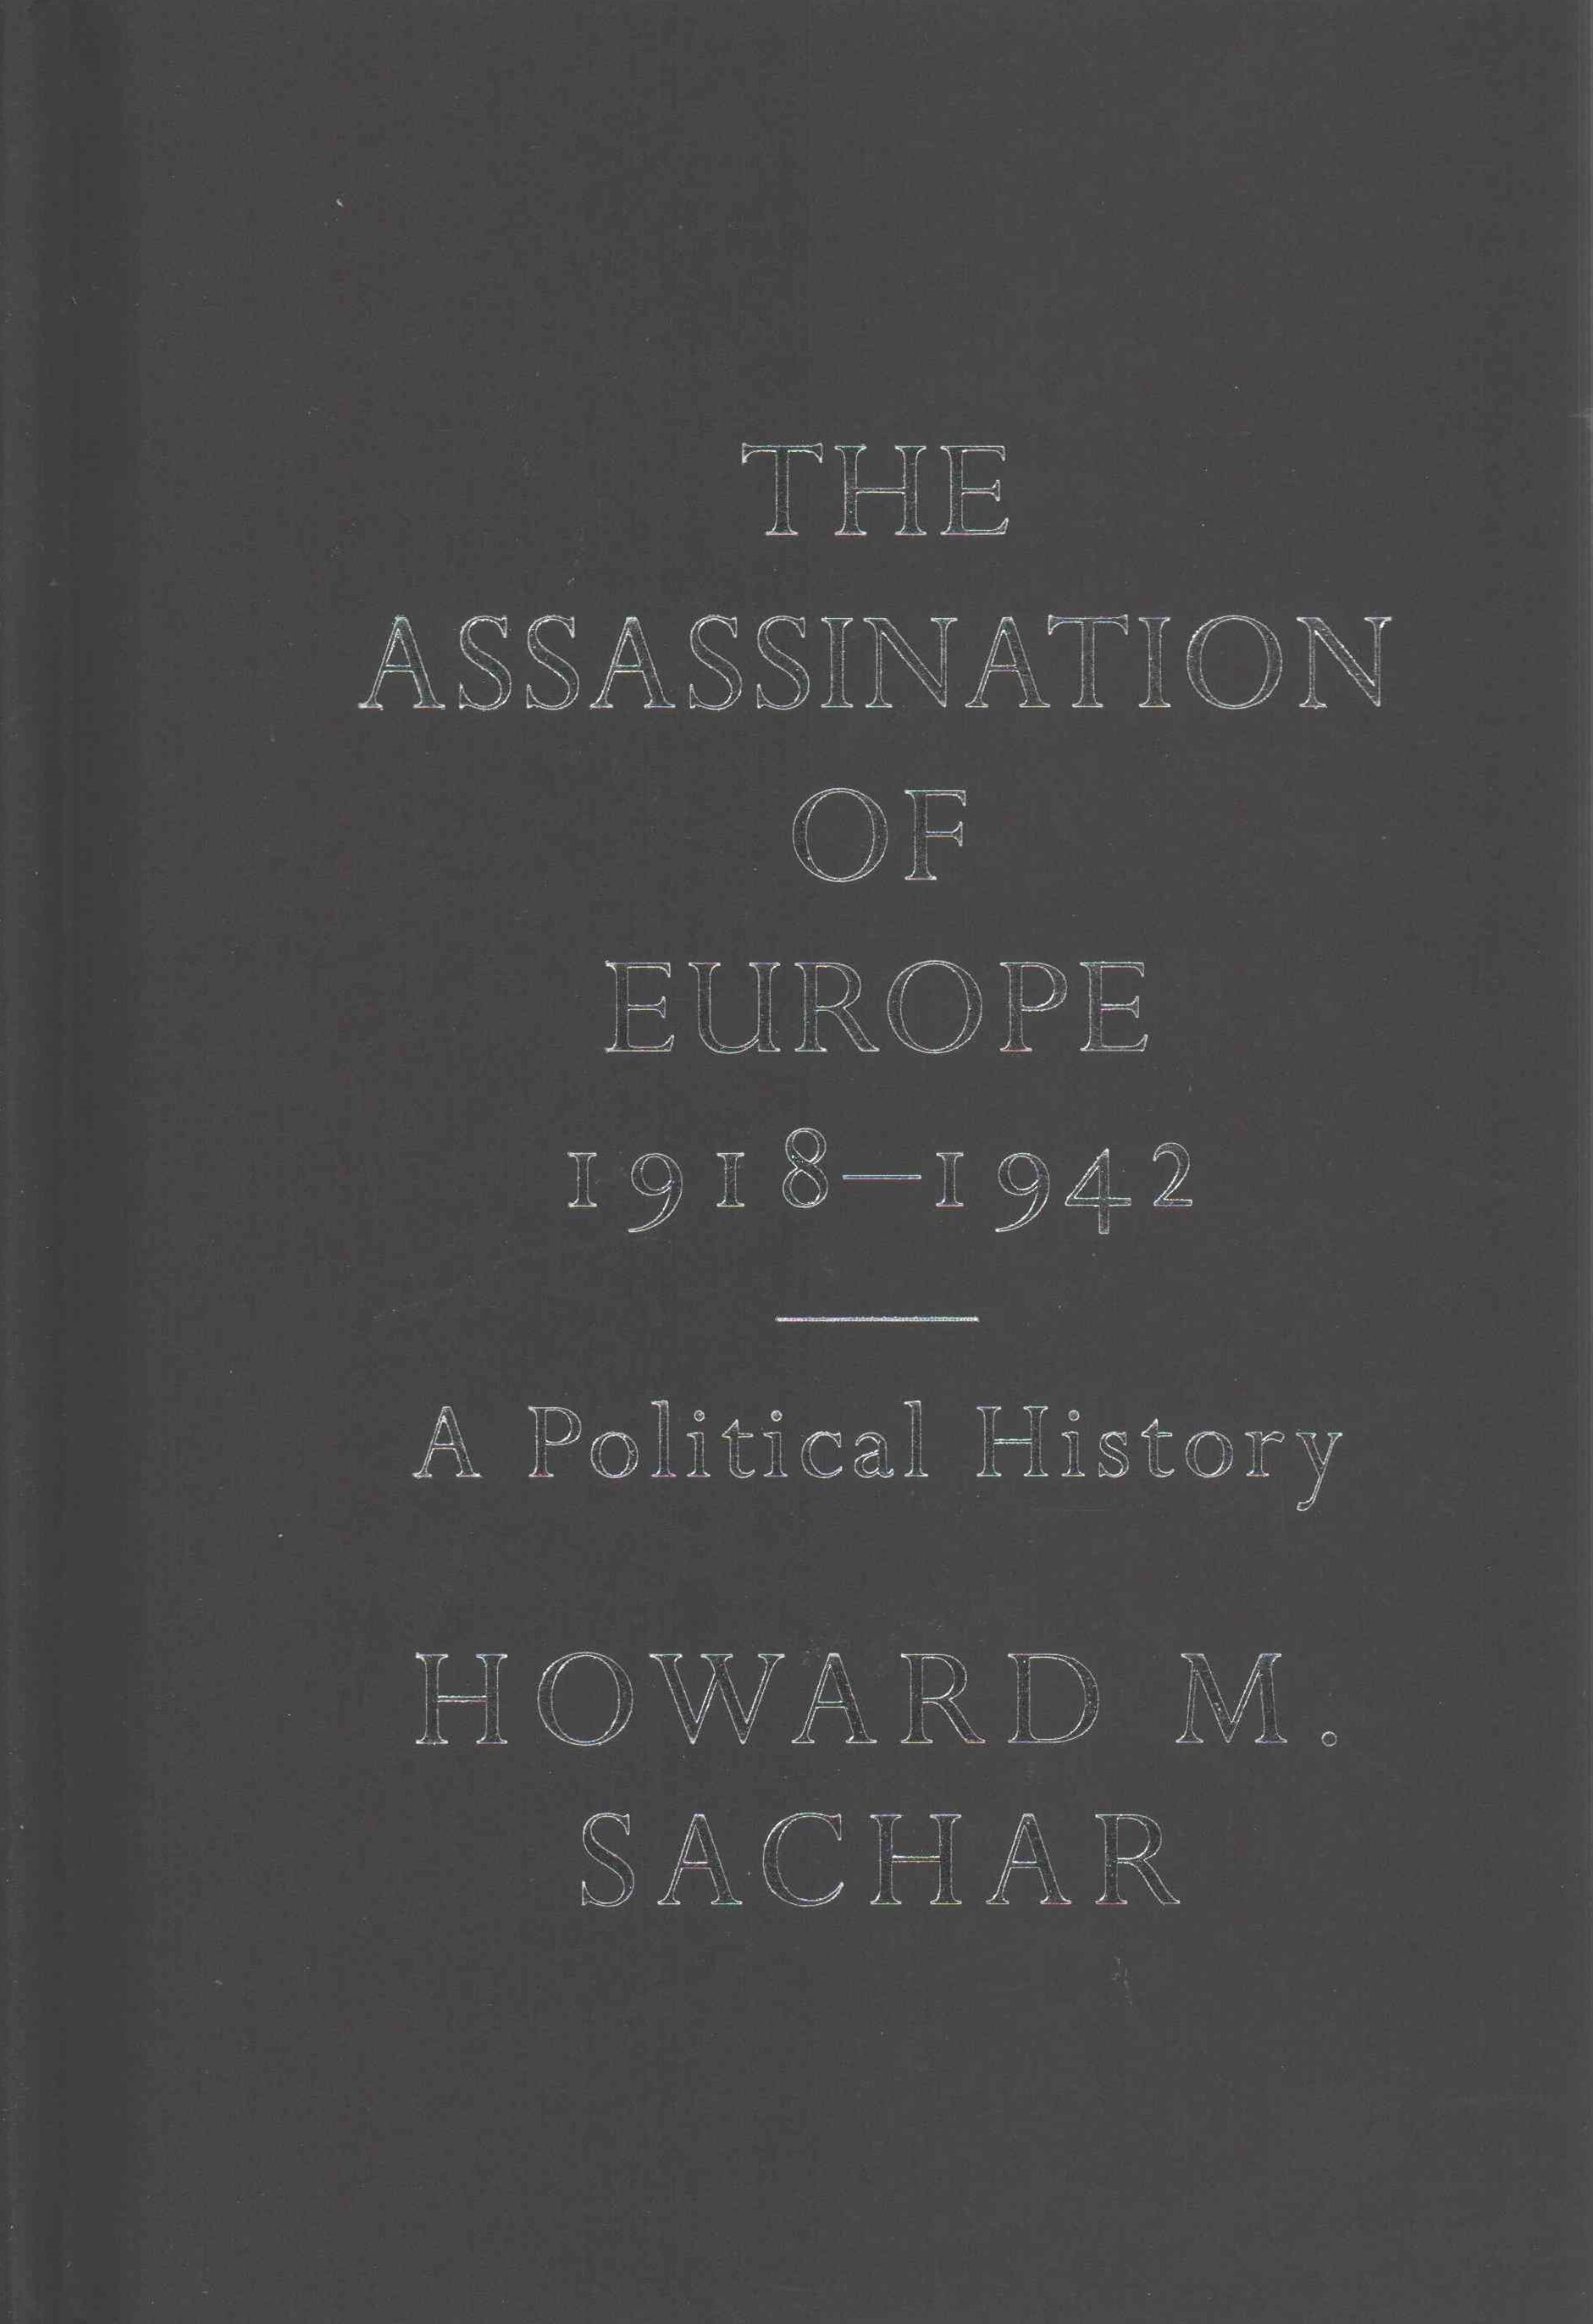 Assassination of Europe, 1918-1942